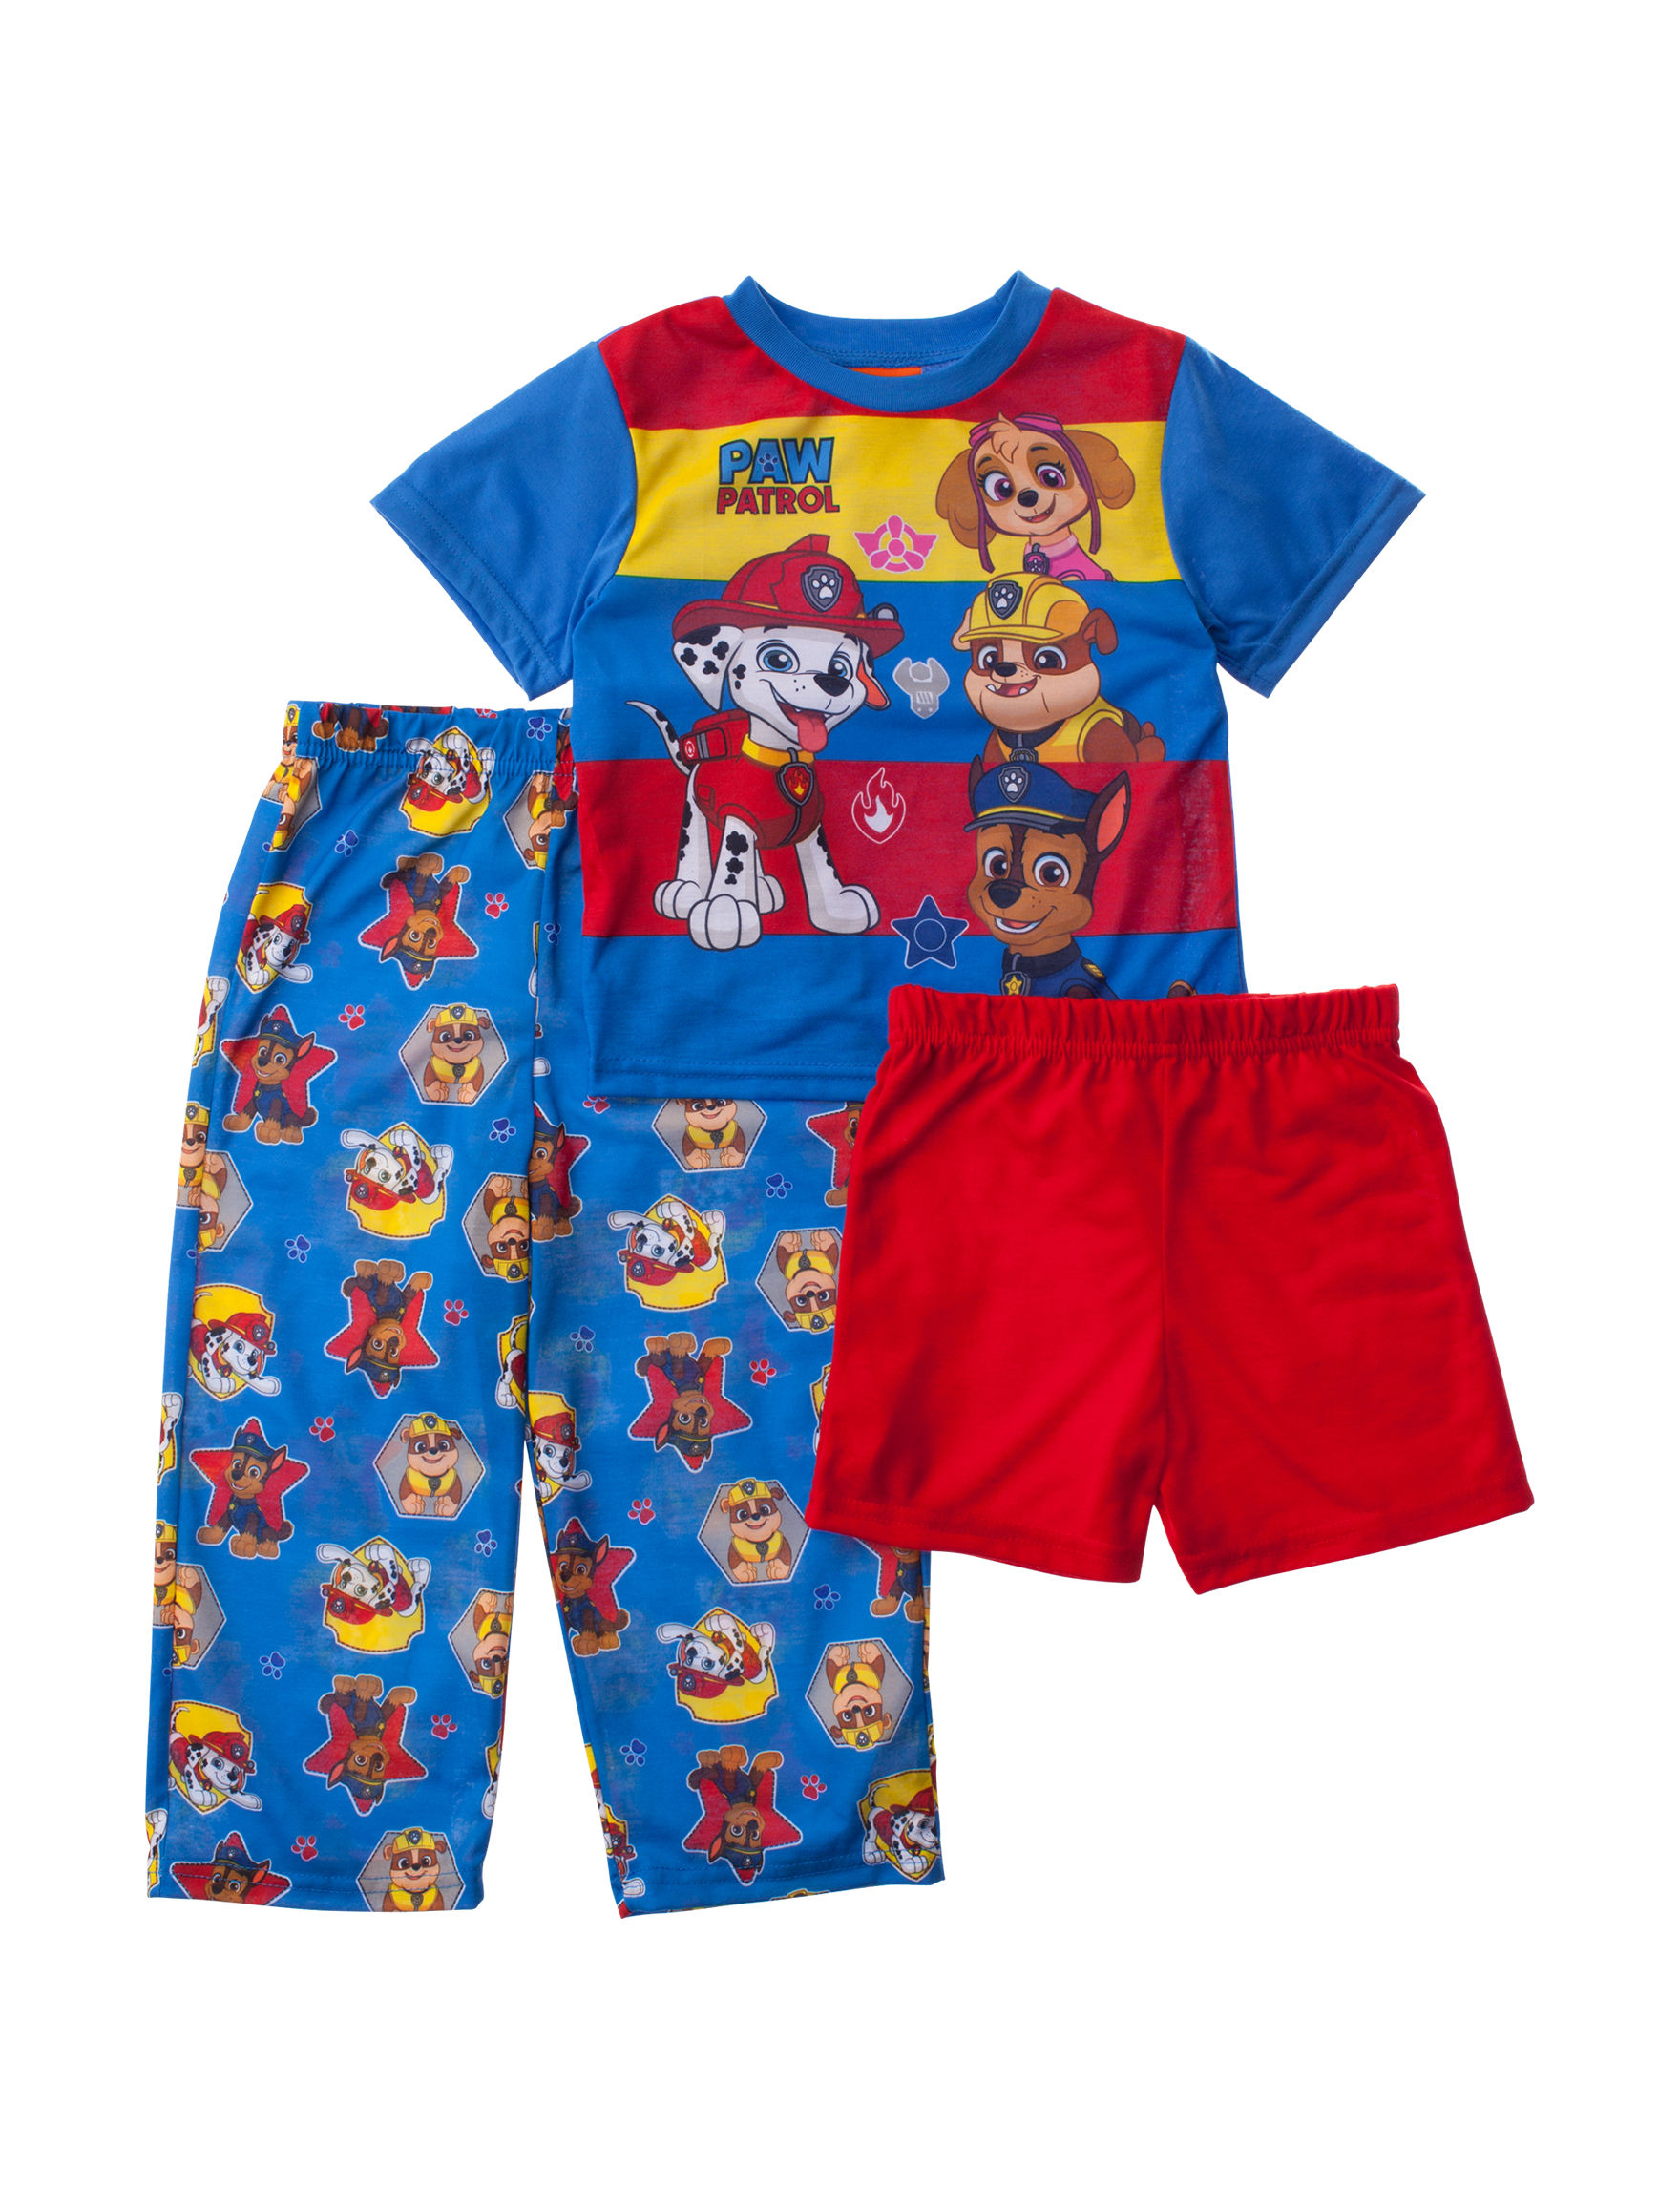 Licensed Blue/ Red Pajama Sets